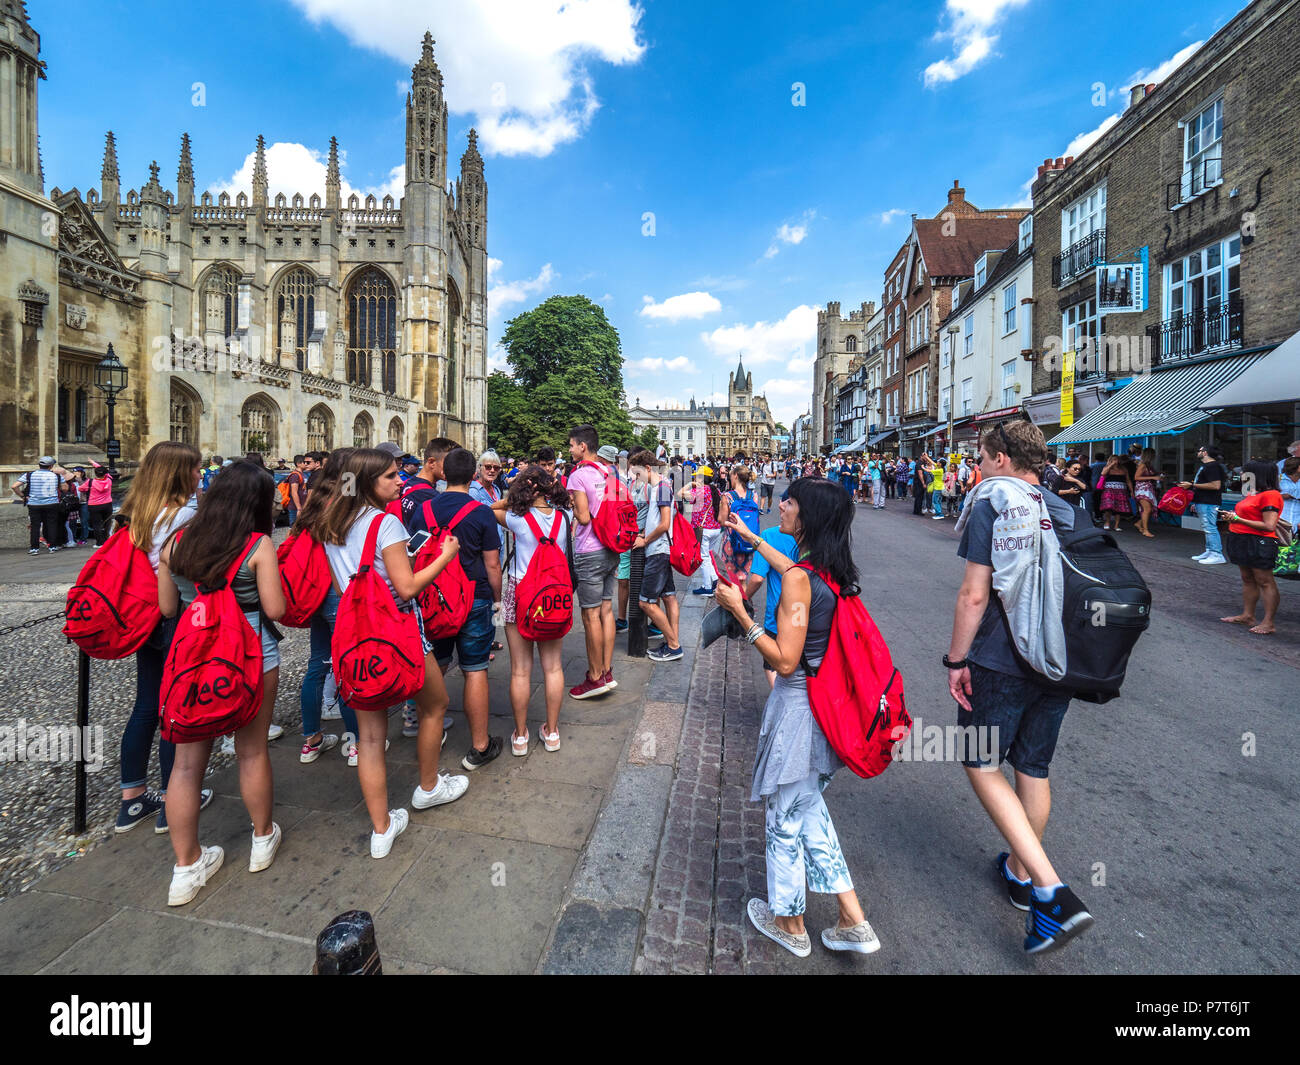 Cambridge Tourism - A School Tour group in the Historic Centre of Cambridge, near Kings College Chapel - Stock Image